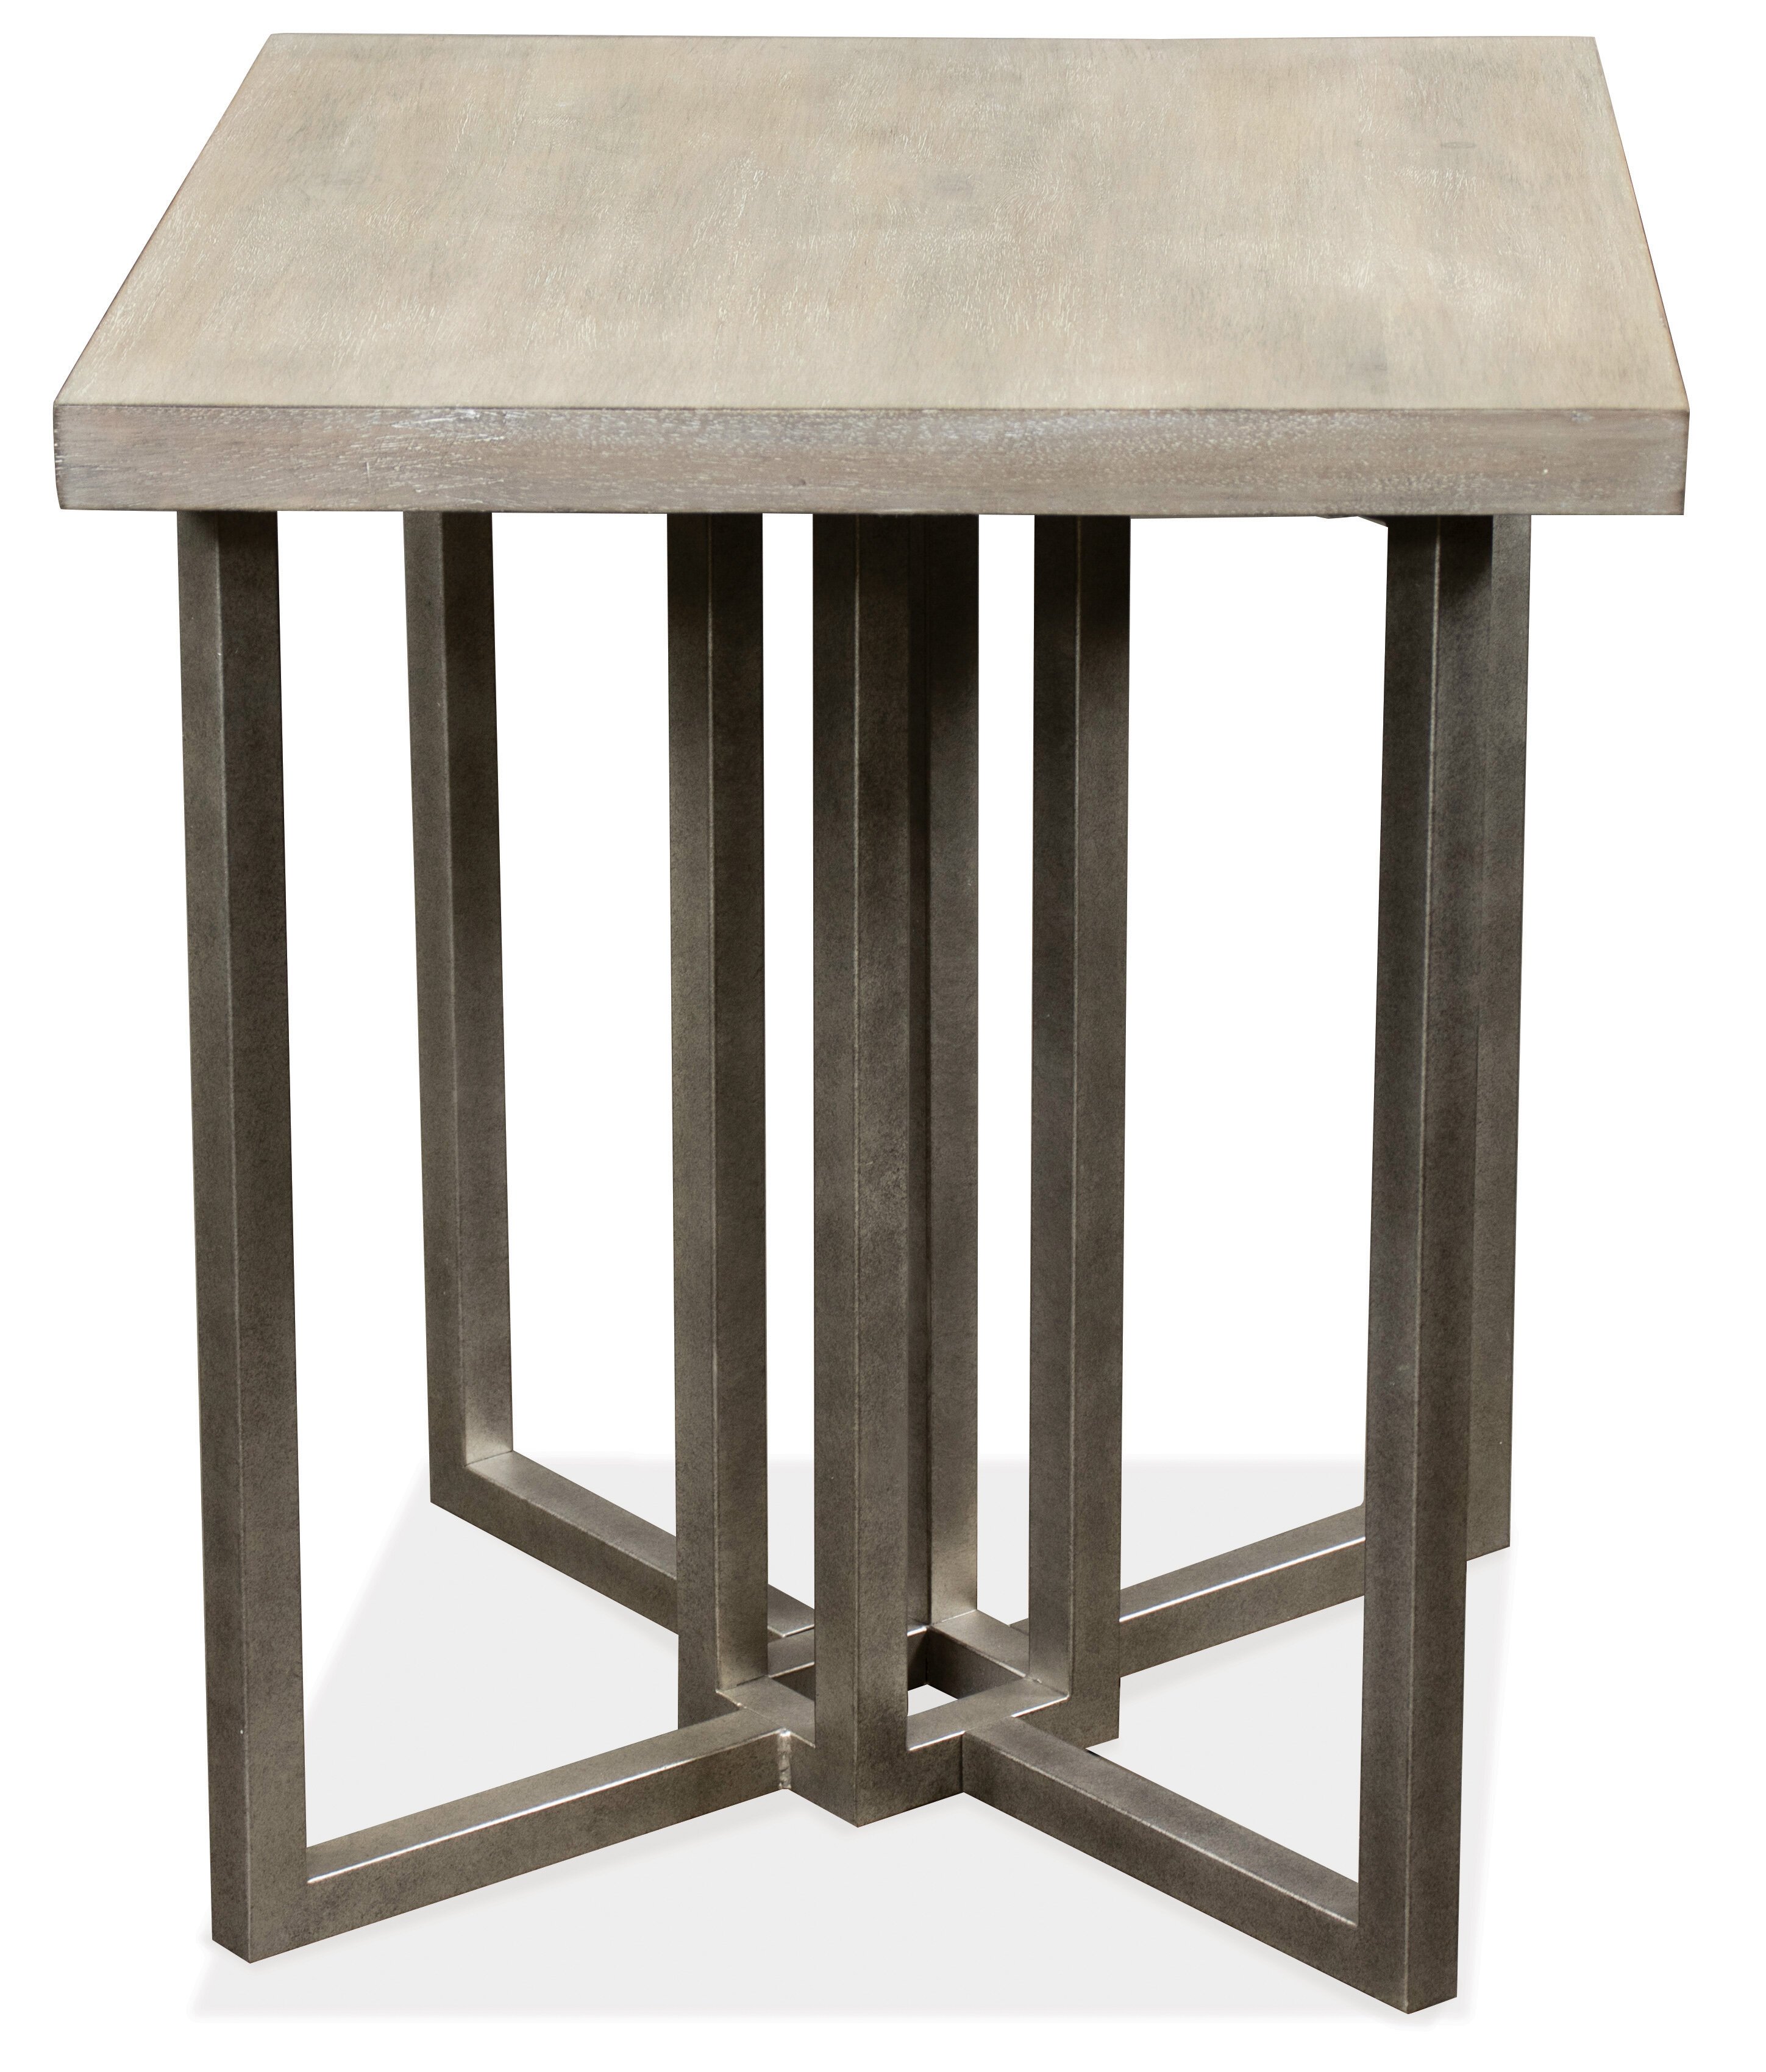 Gracie Oaks Adelyn Cross Legs End Table Wayfair